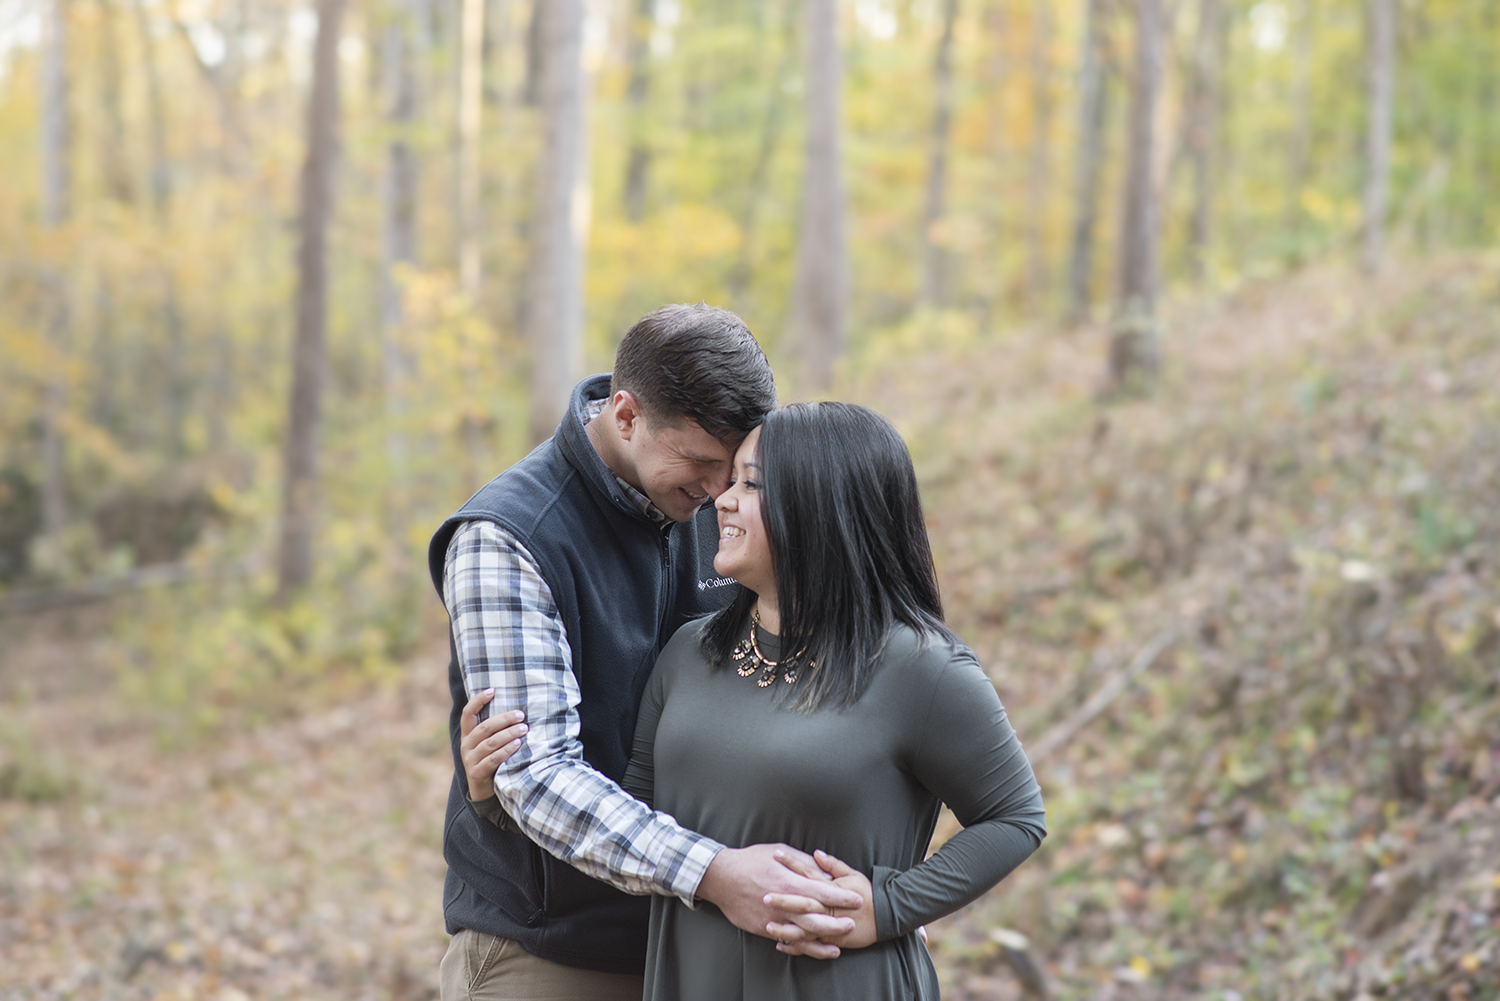 Geoff & Alicia's Landsford Canal Engagement Session | Charlotte, NC Wedding Photographer